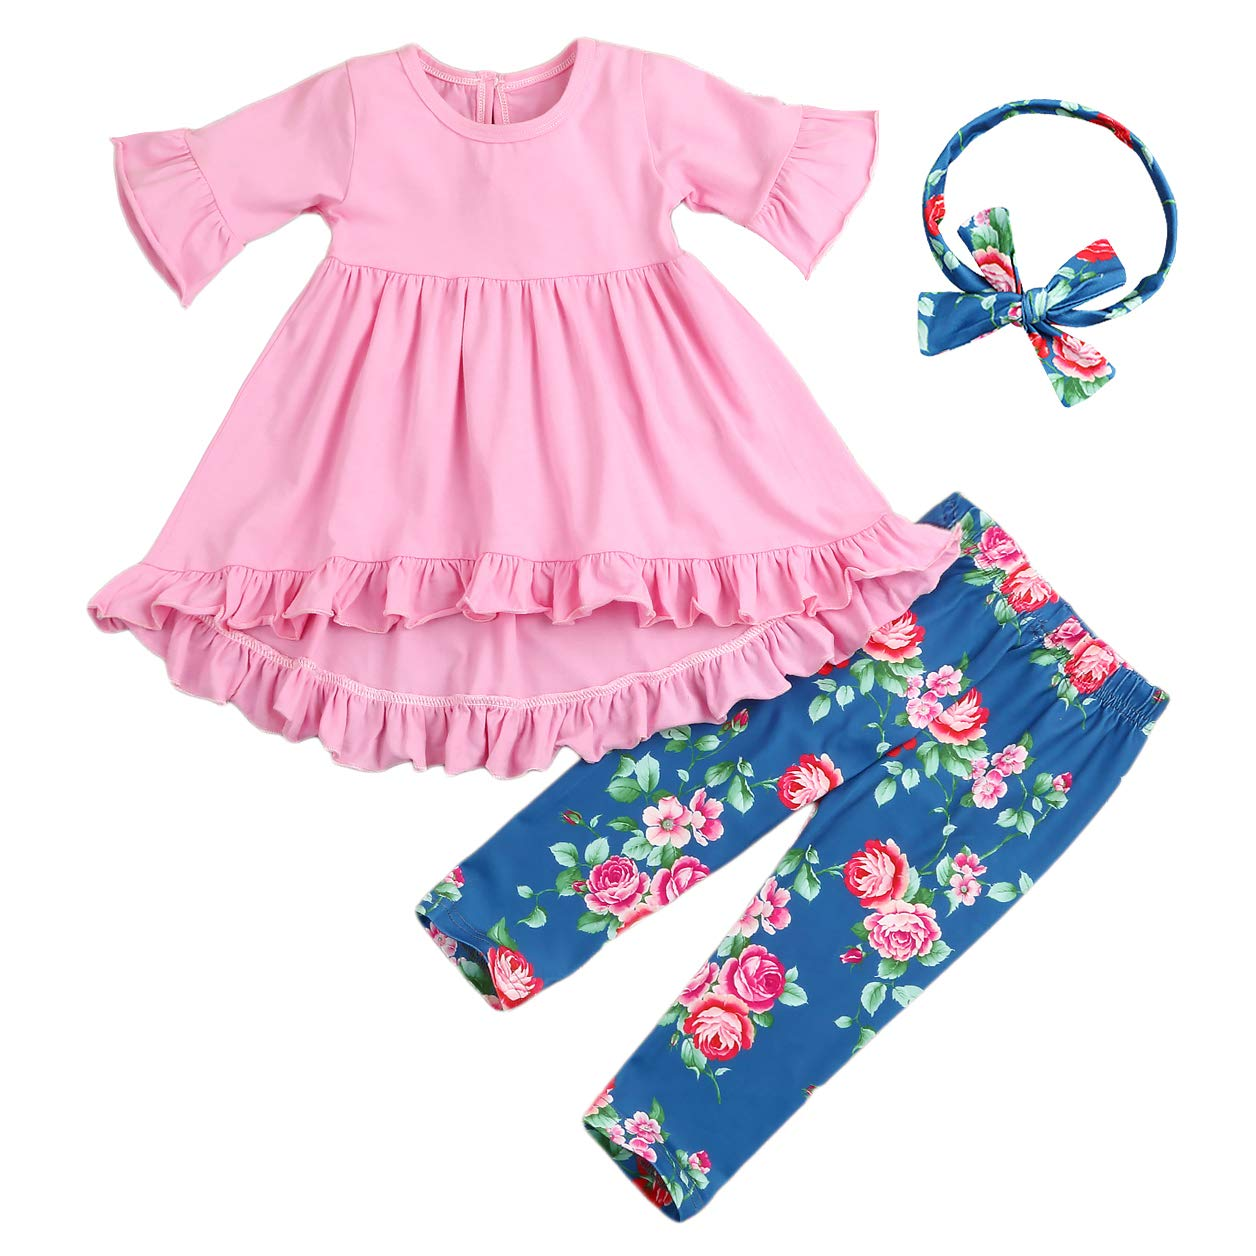 3Pcs Outfits Little Girl Pink Long Sleeve Ruffle Dress T-Shirt Floral Pants Headband/Scarf Sets